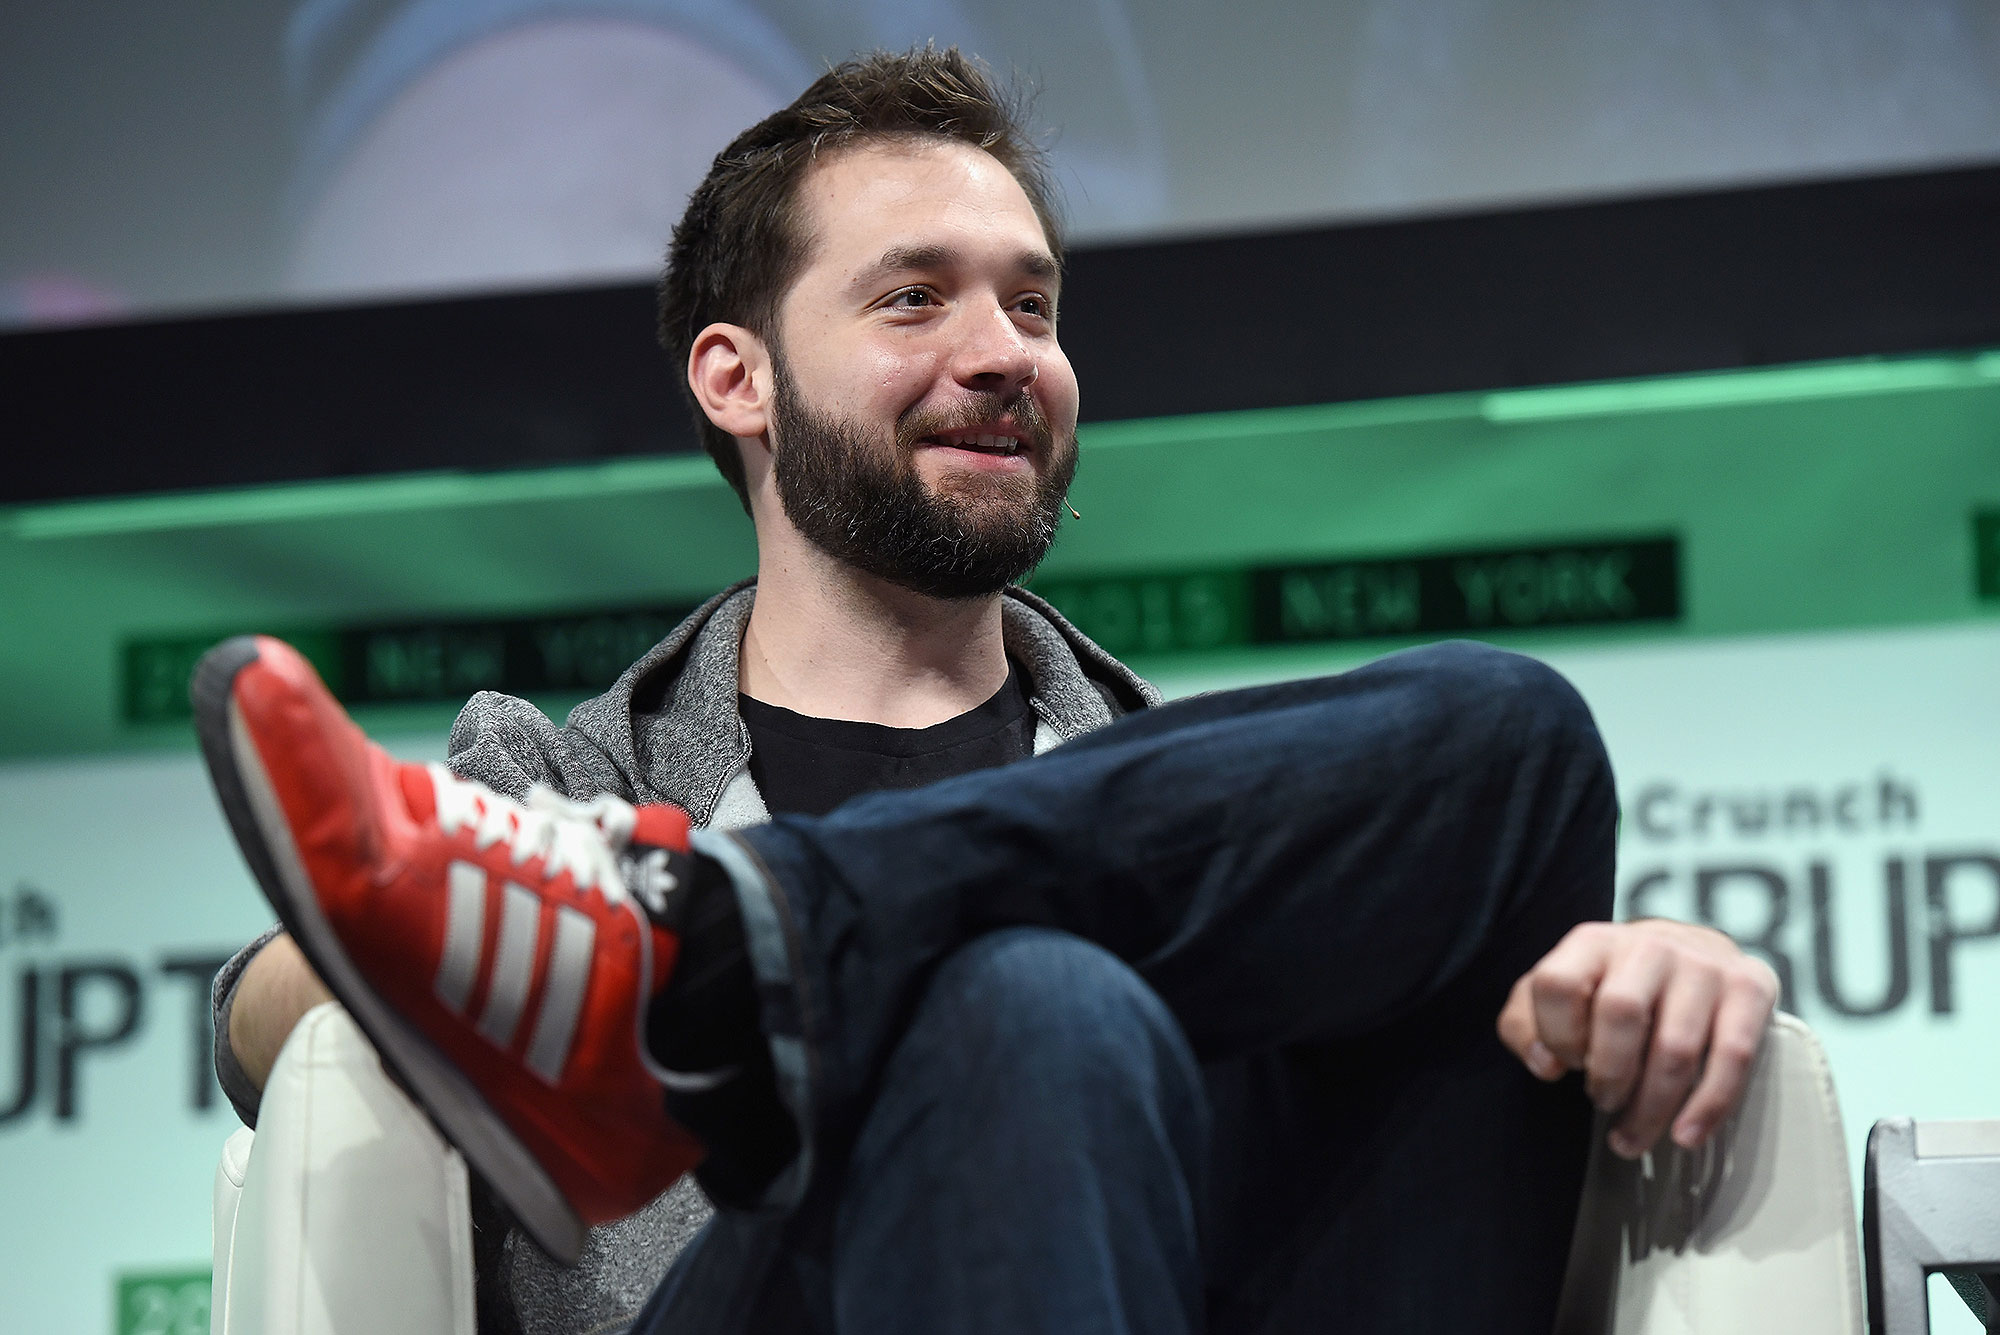 NEW YORK, NY - MAY 06: Co-Founder and Executive Chair of Reddit, and Partner at Y Combinator, Alexis Ohanian speaks onstage during TechCrunch Disrupt NY 2015 - Day 3 at The Manhattan Center on May 6, 2015 in New York City. (Photo by Noam Galai/Getty Images for TechCrunch)